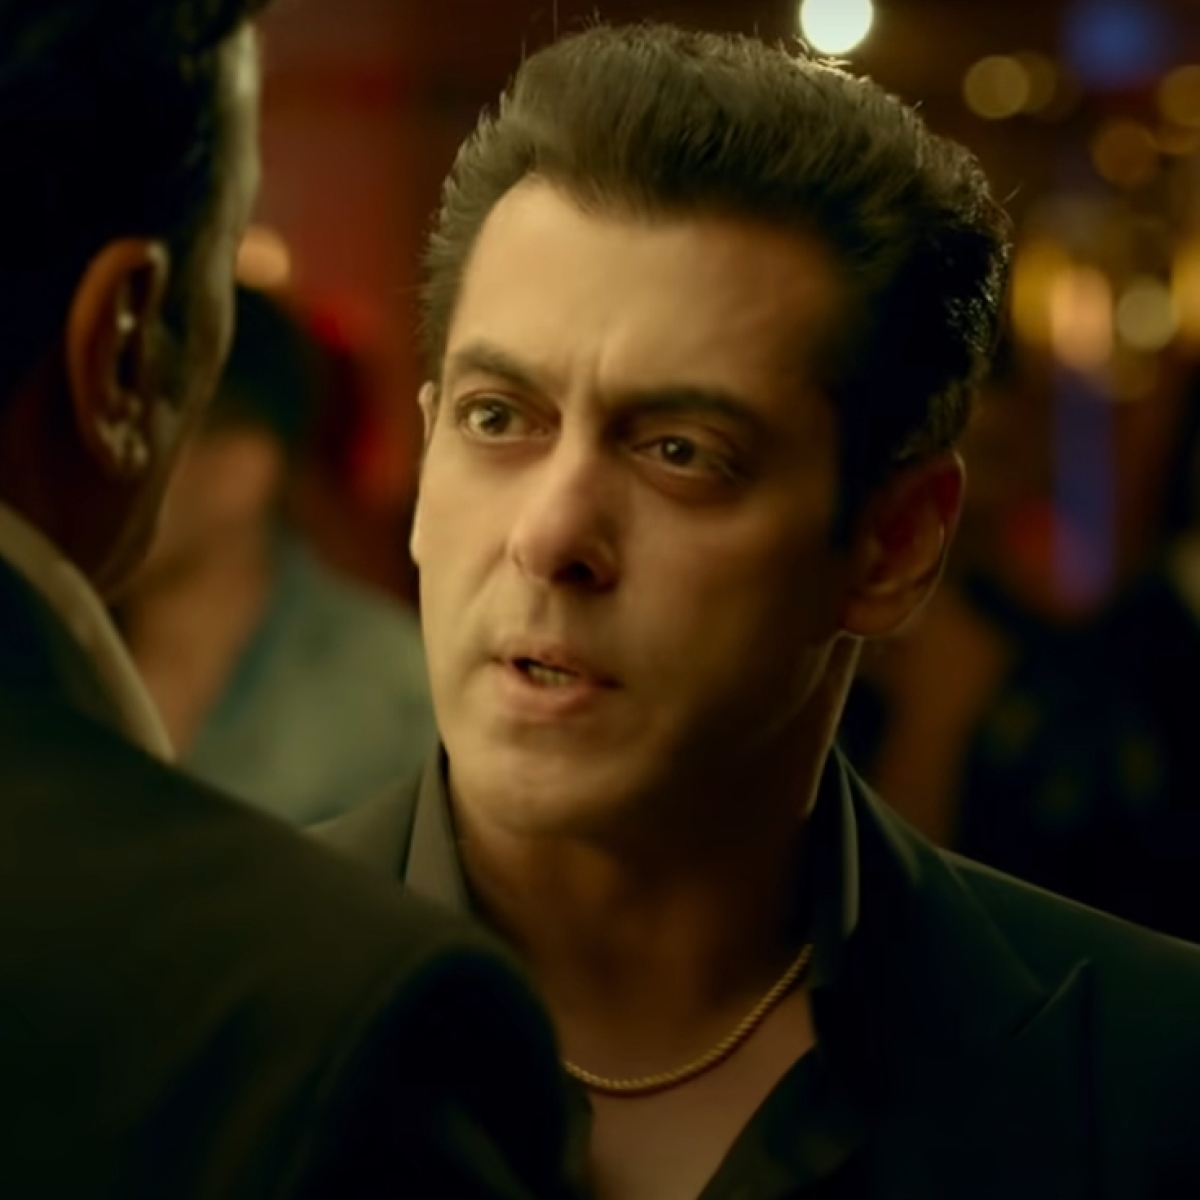 List of theatres in India where you can watch Salman Khan's 'Radhe: Your Most Wanted Bhai'